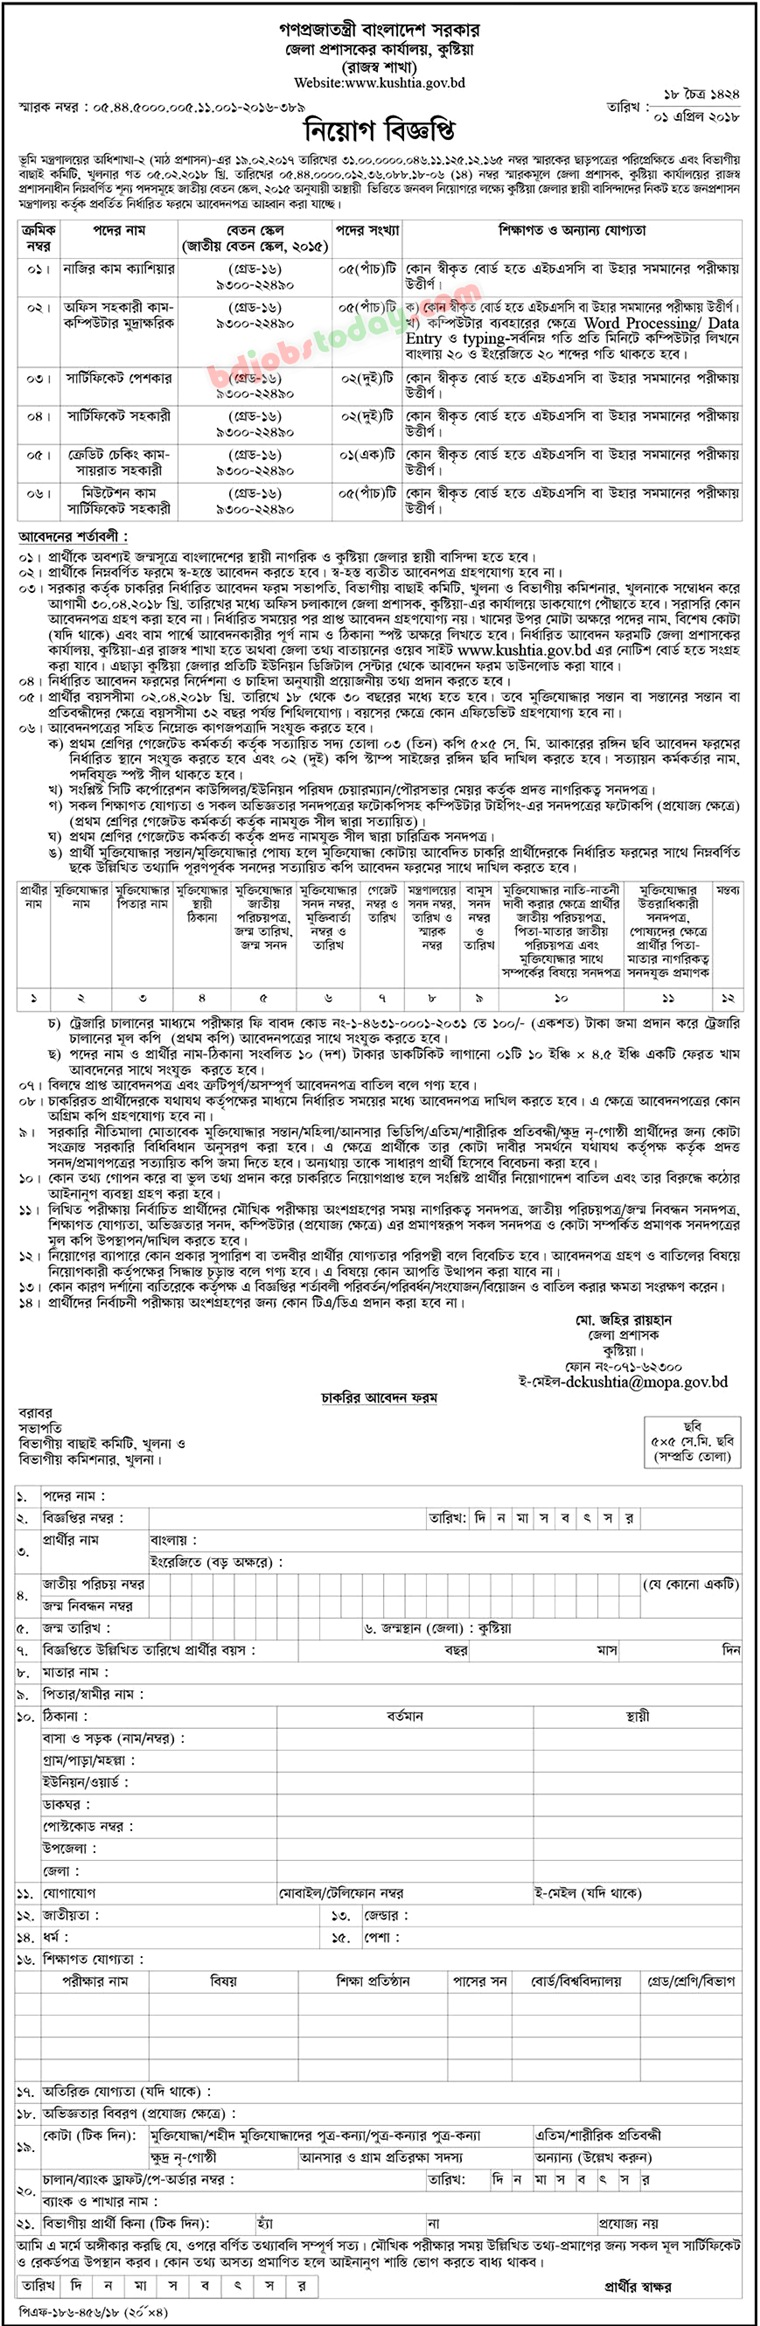 Office of District Commissioner, Kushtia jobs